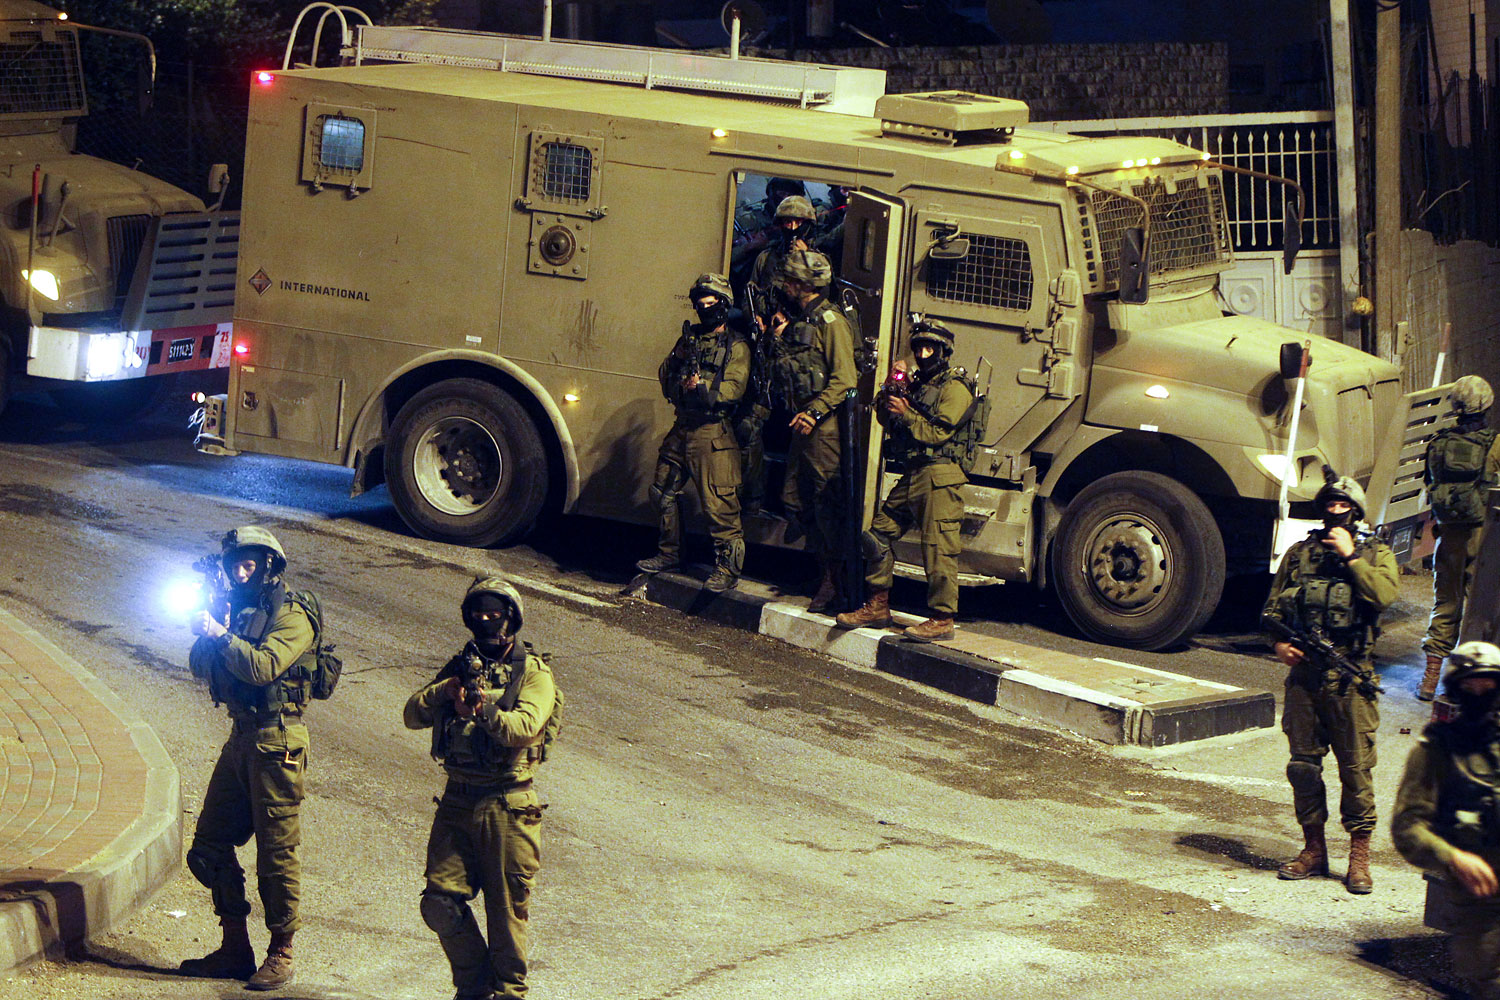 Israeli military patrols the streets in the West Bank city of Hebron on July 6, 2014